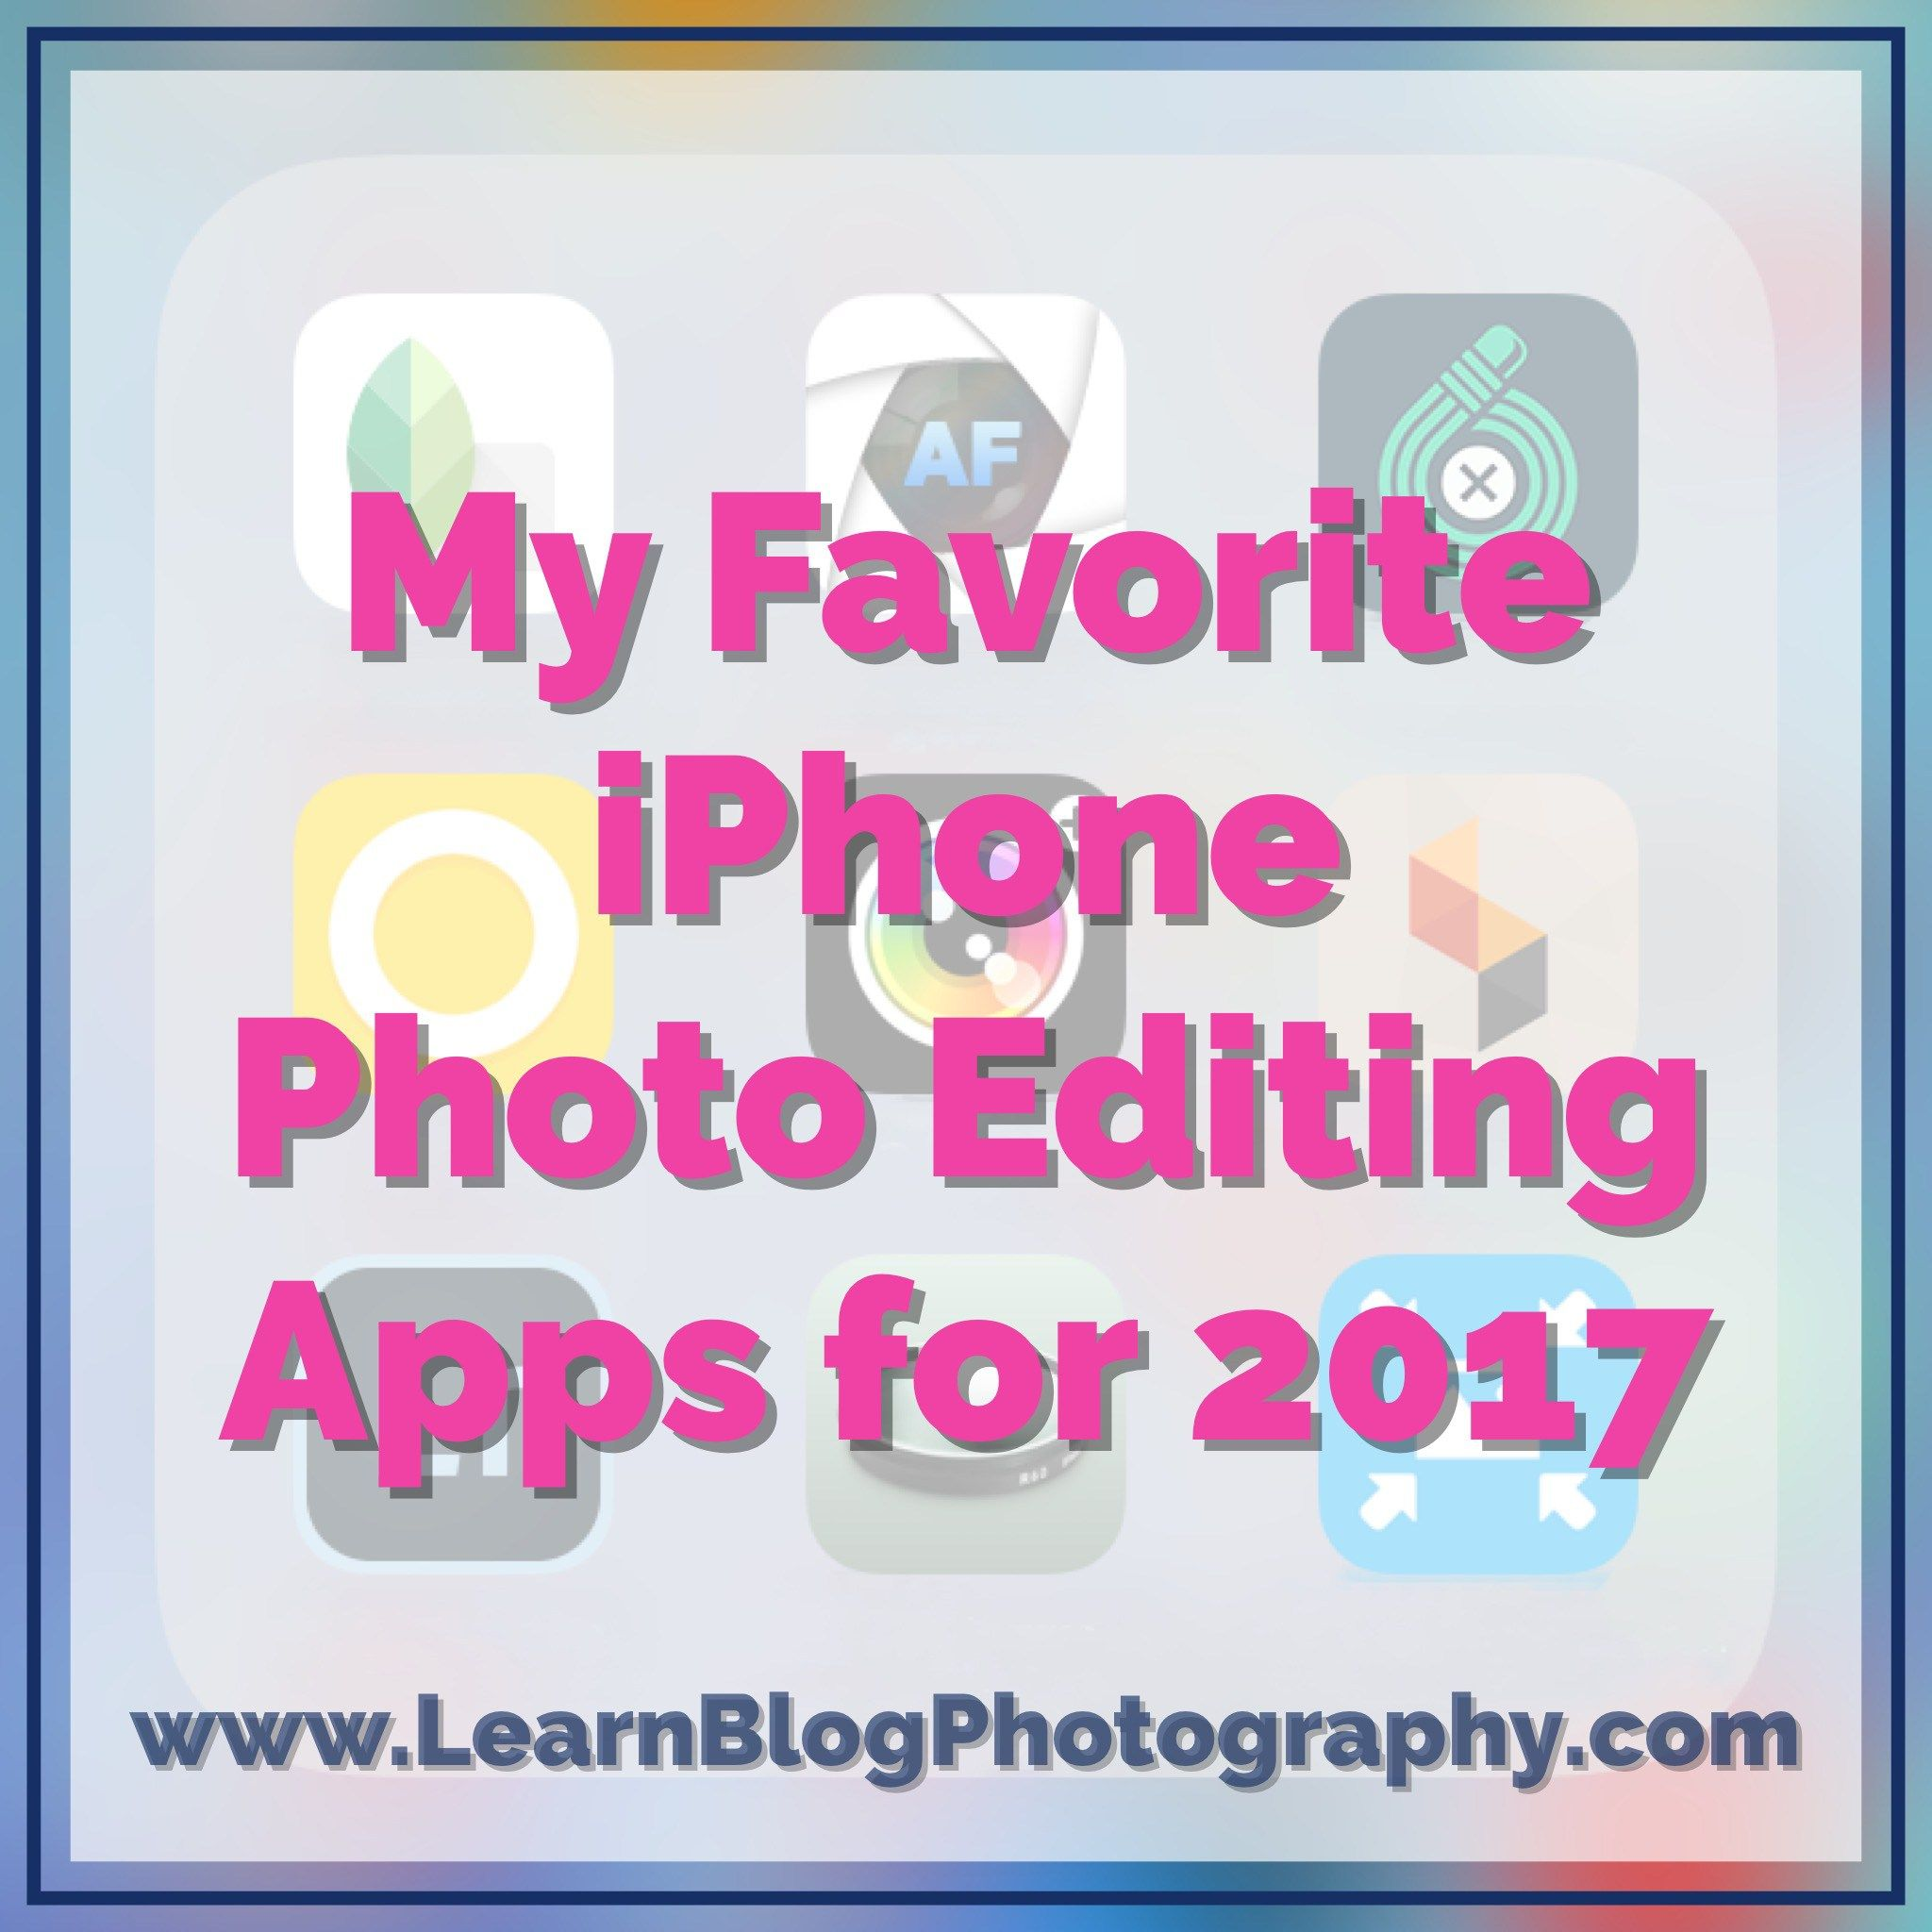 Helping bloggers & biz owners learn photography + photo editing; no fancy camera required!